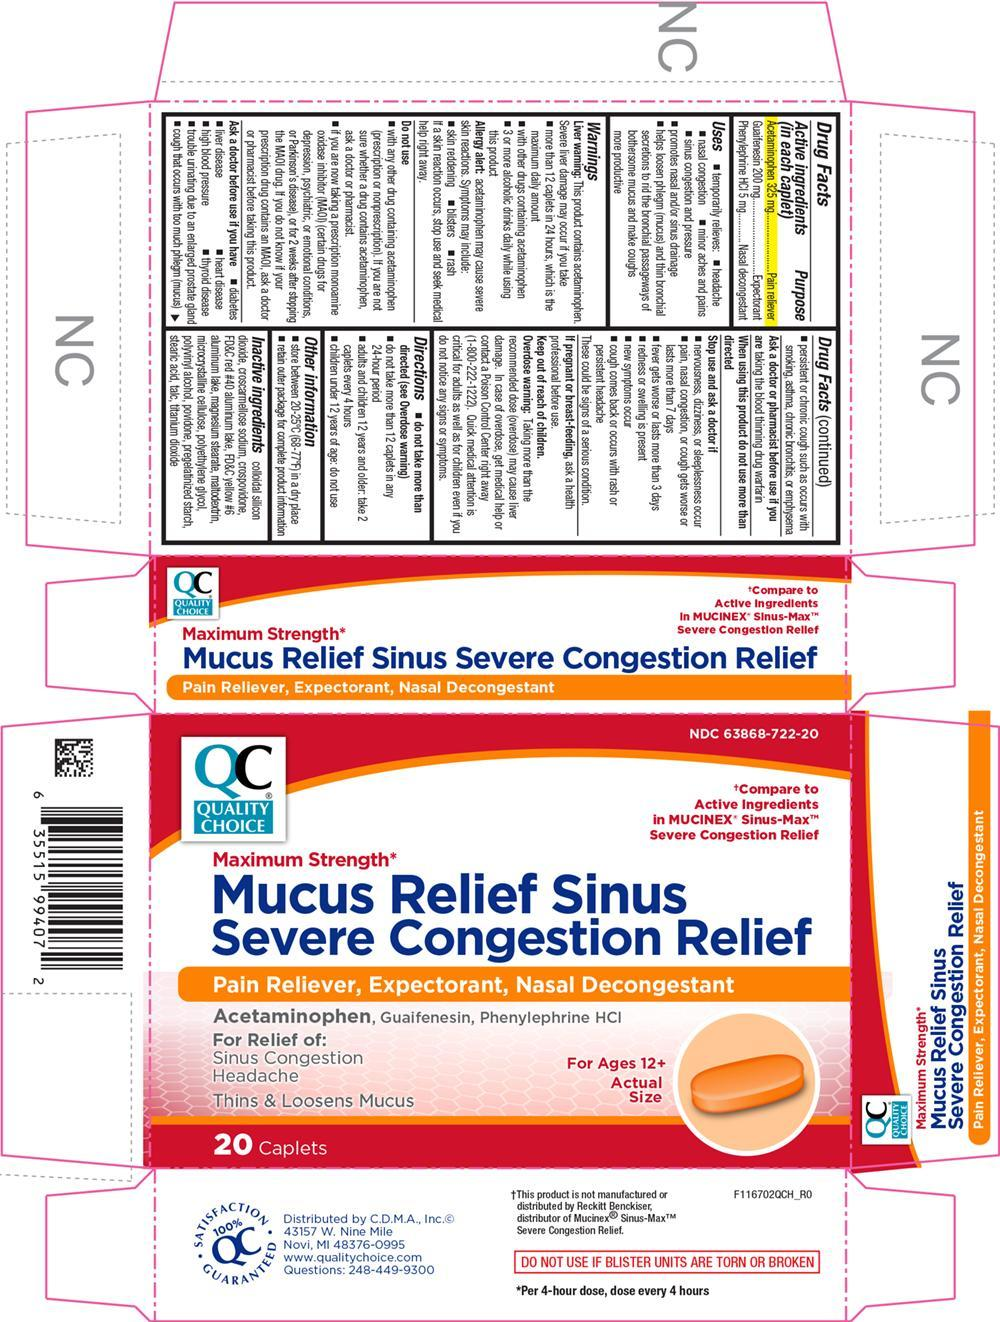 Mucus Relief Sinus Severe Congestion Relief (Acetaminophen, Guaifenesin, And Phenylephrine Hydrochloride) Tablet, Coated [Chain Drug Marketing Association]